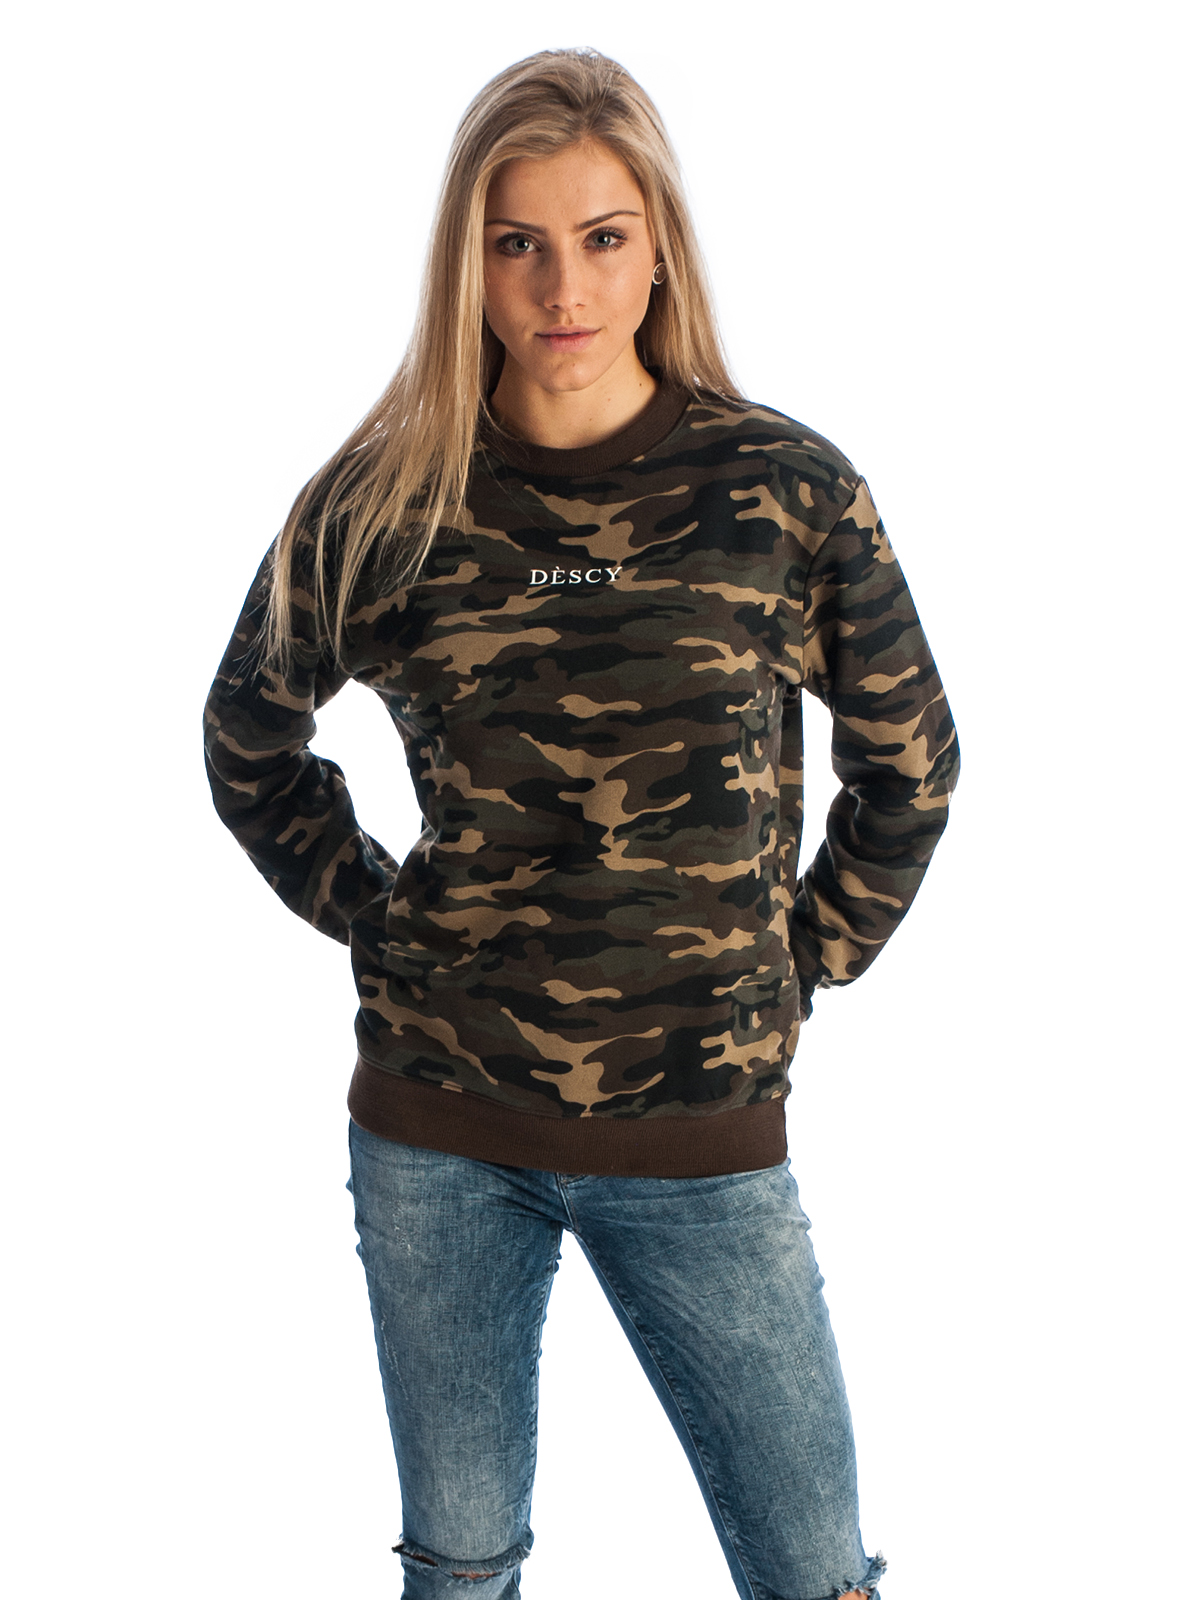 Shop the Women's Sweatshirt Sweater In Camo at hereuloadu5.ga and see the entire selection of Women's Sweaters. Free Shipping Available.